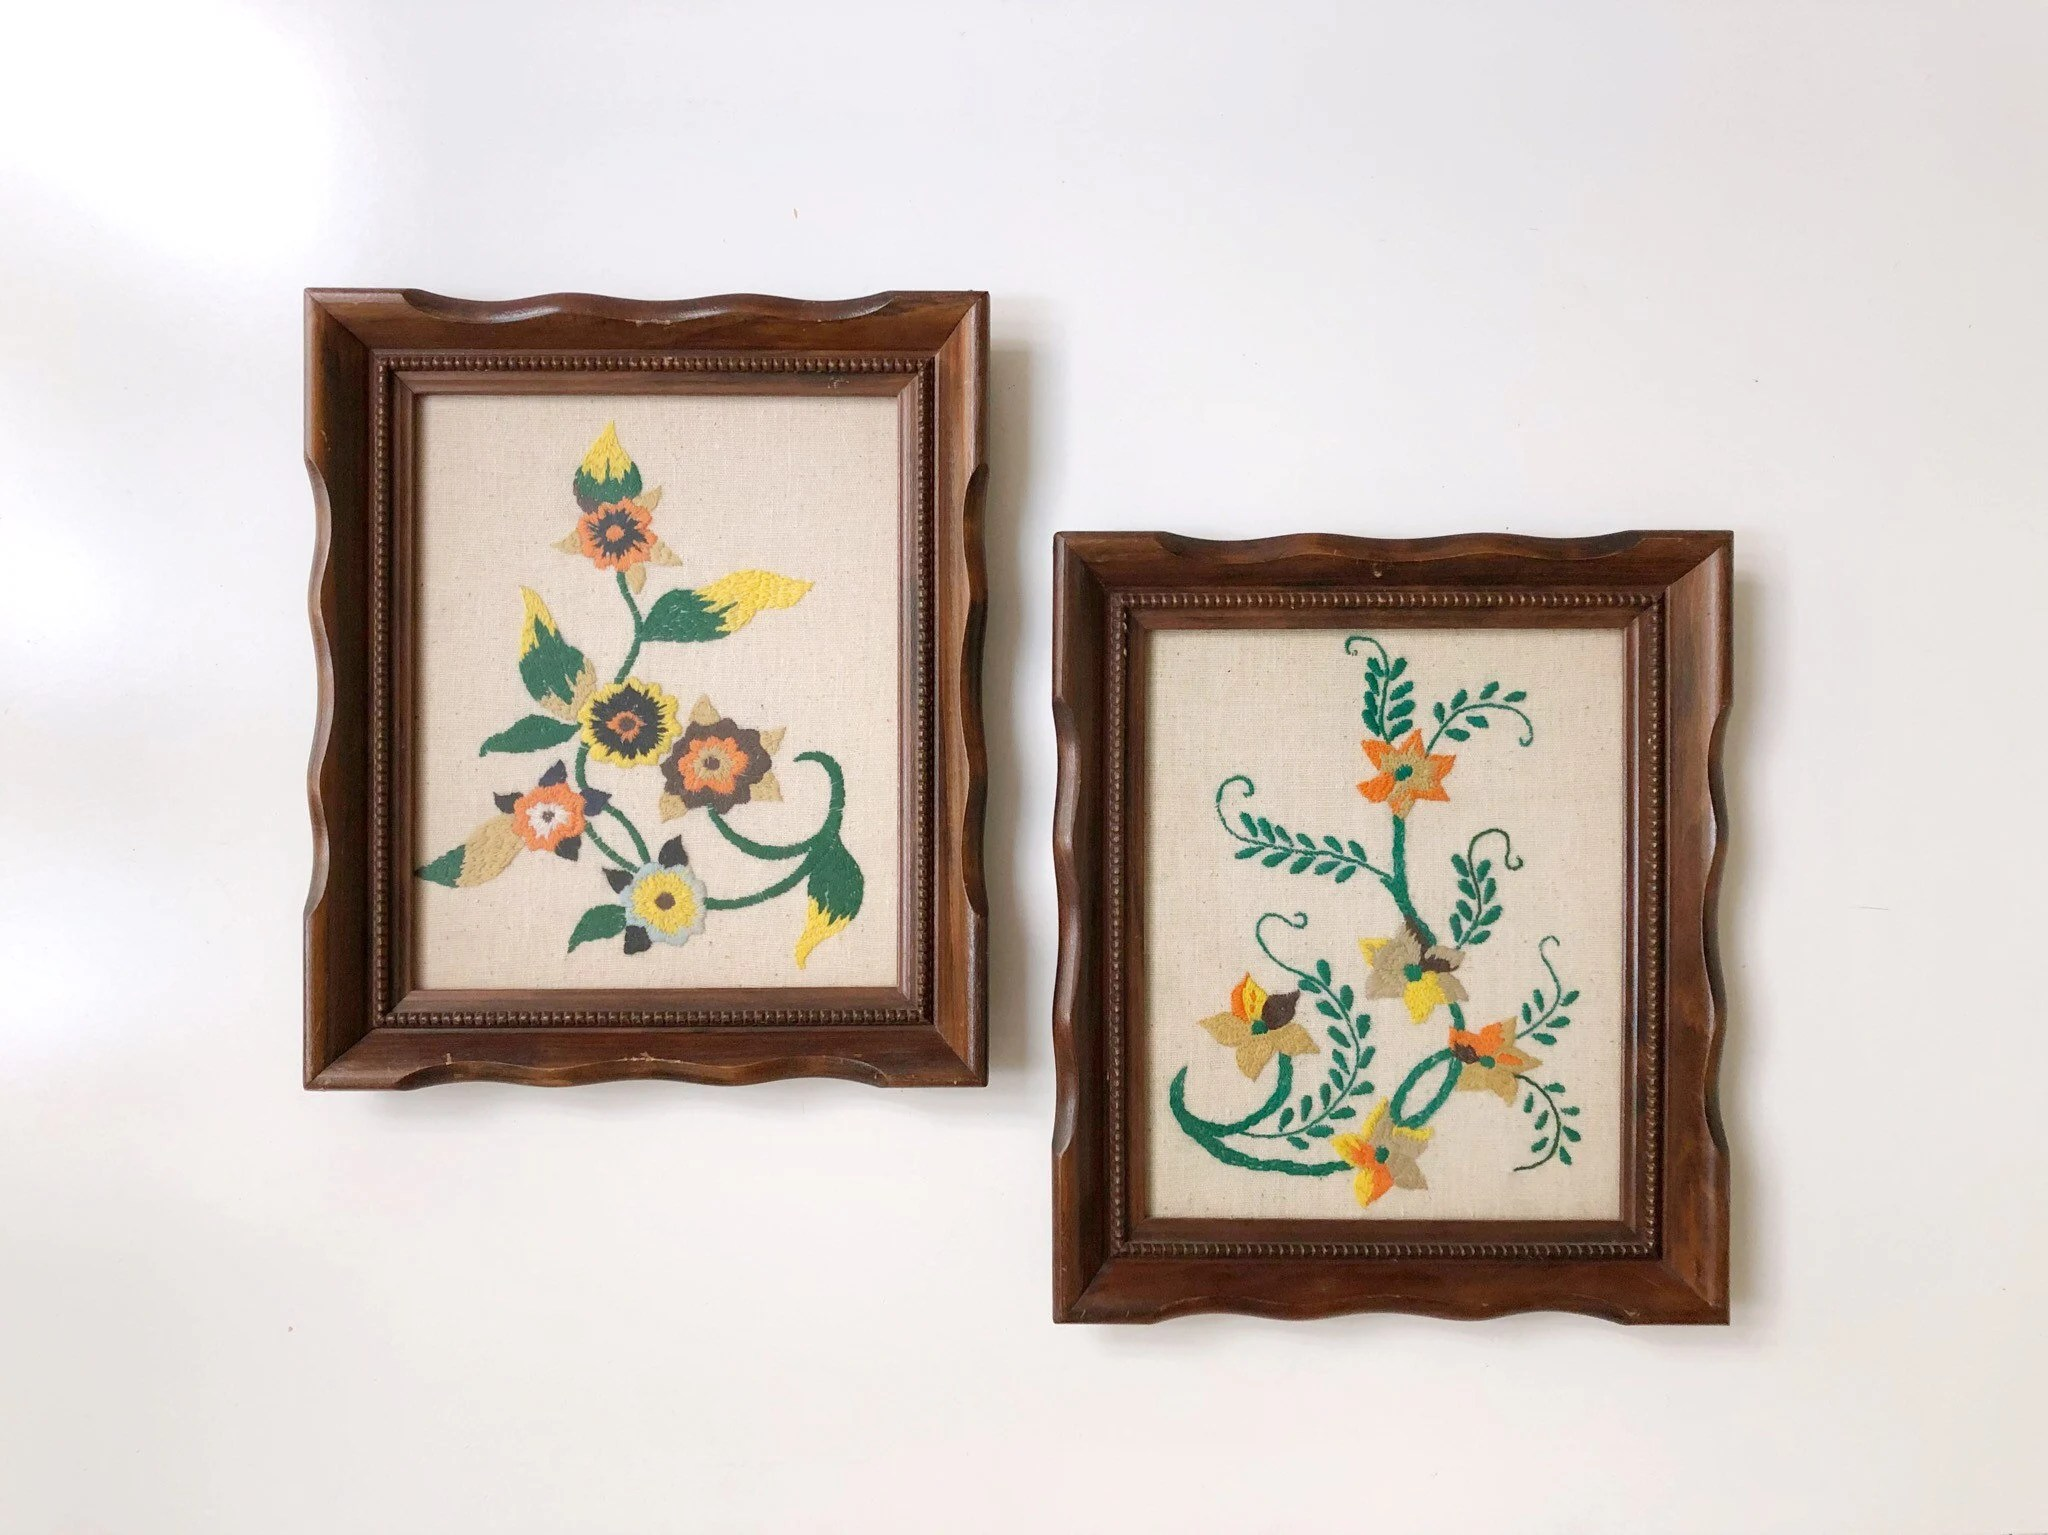 Wall Decor   Art   Find me on Instagram for previews of the good     Pair of Framed Vintage Crewel Embroideries